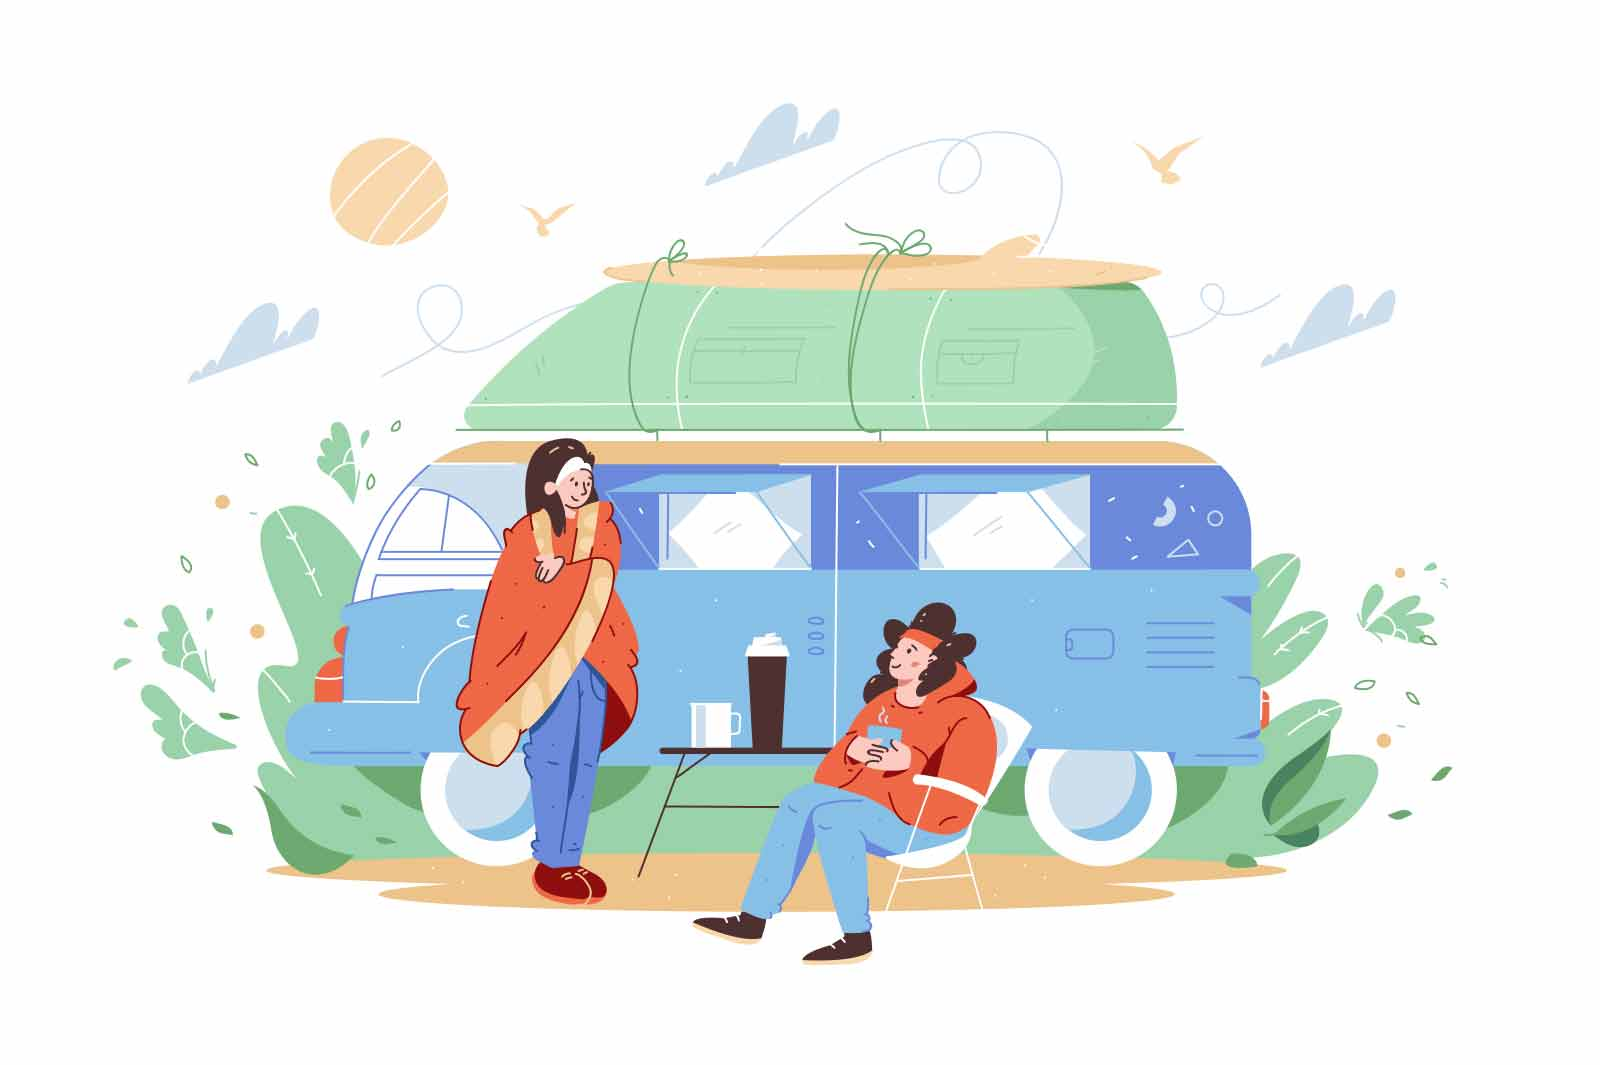 Friends travel on house on wheels vector illustration. Start day with coffee on nature flat style. Explore world on car, adventure concept